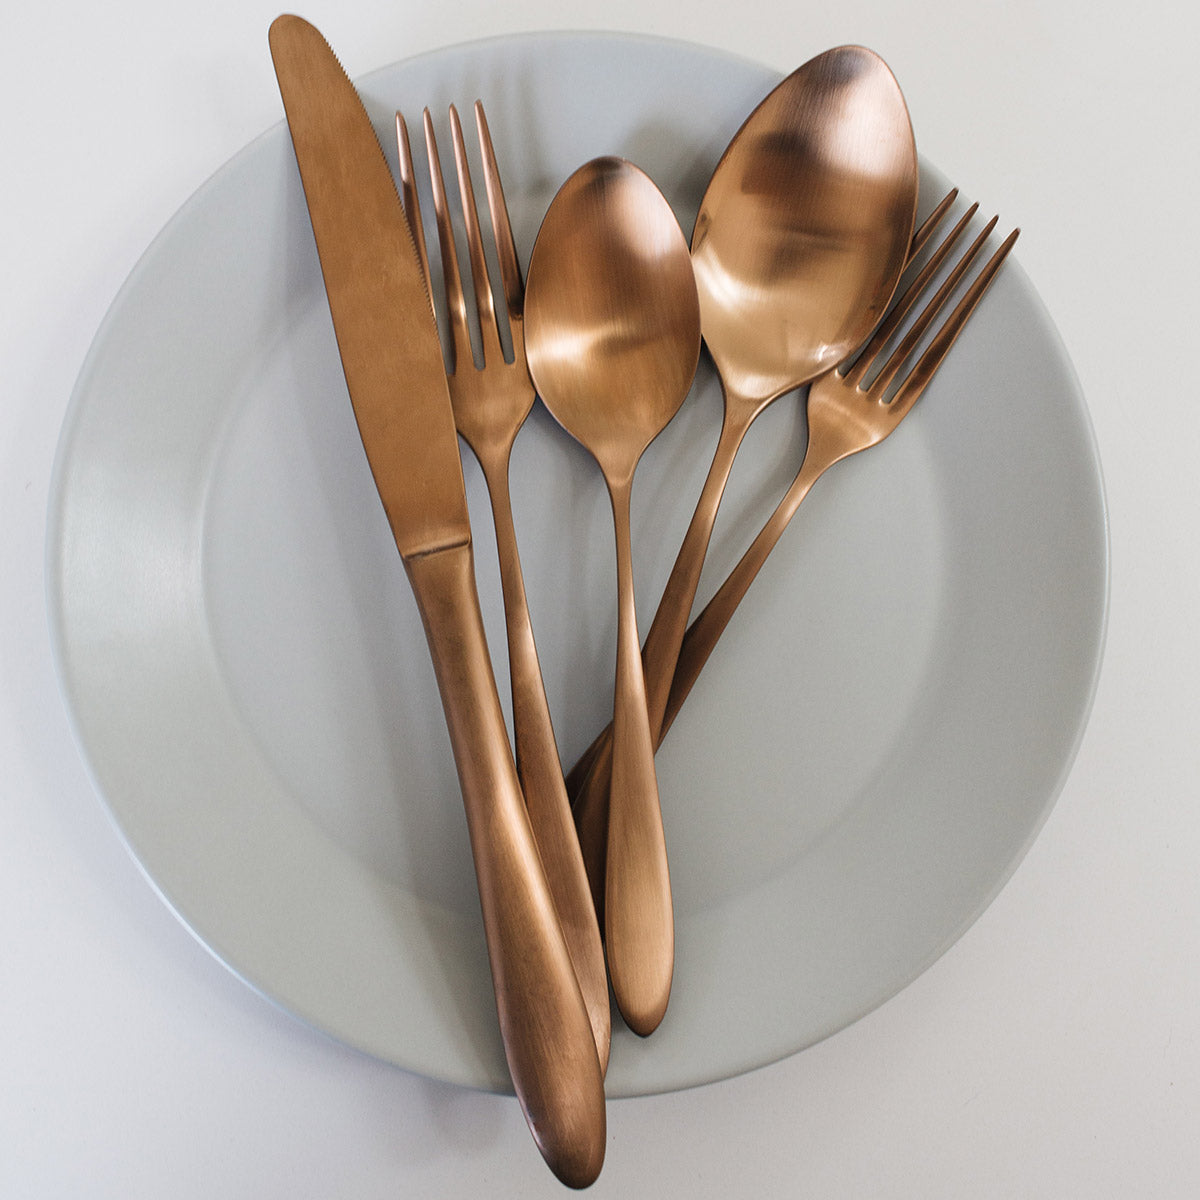 satin copper flatware set (20 pcs)